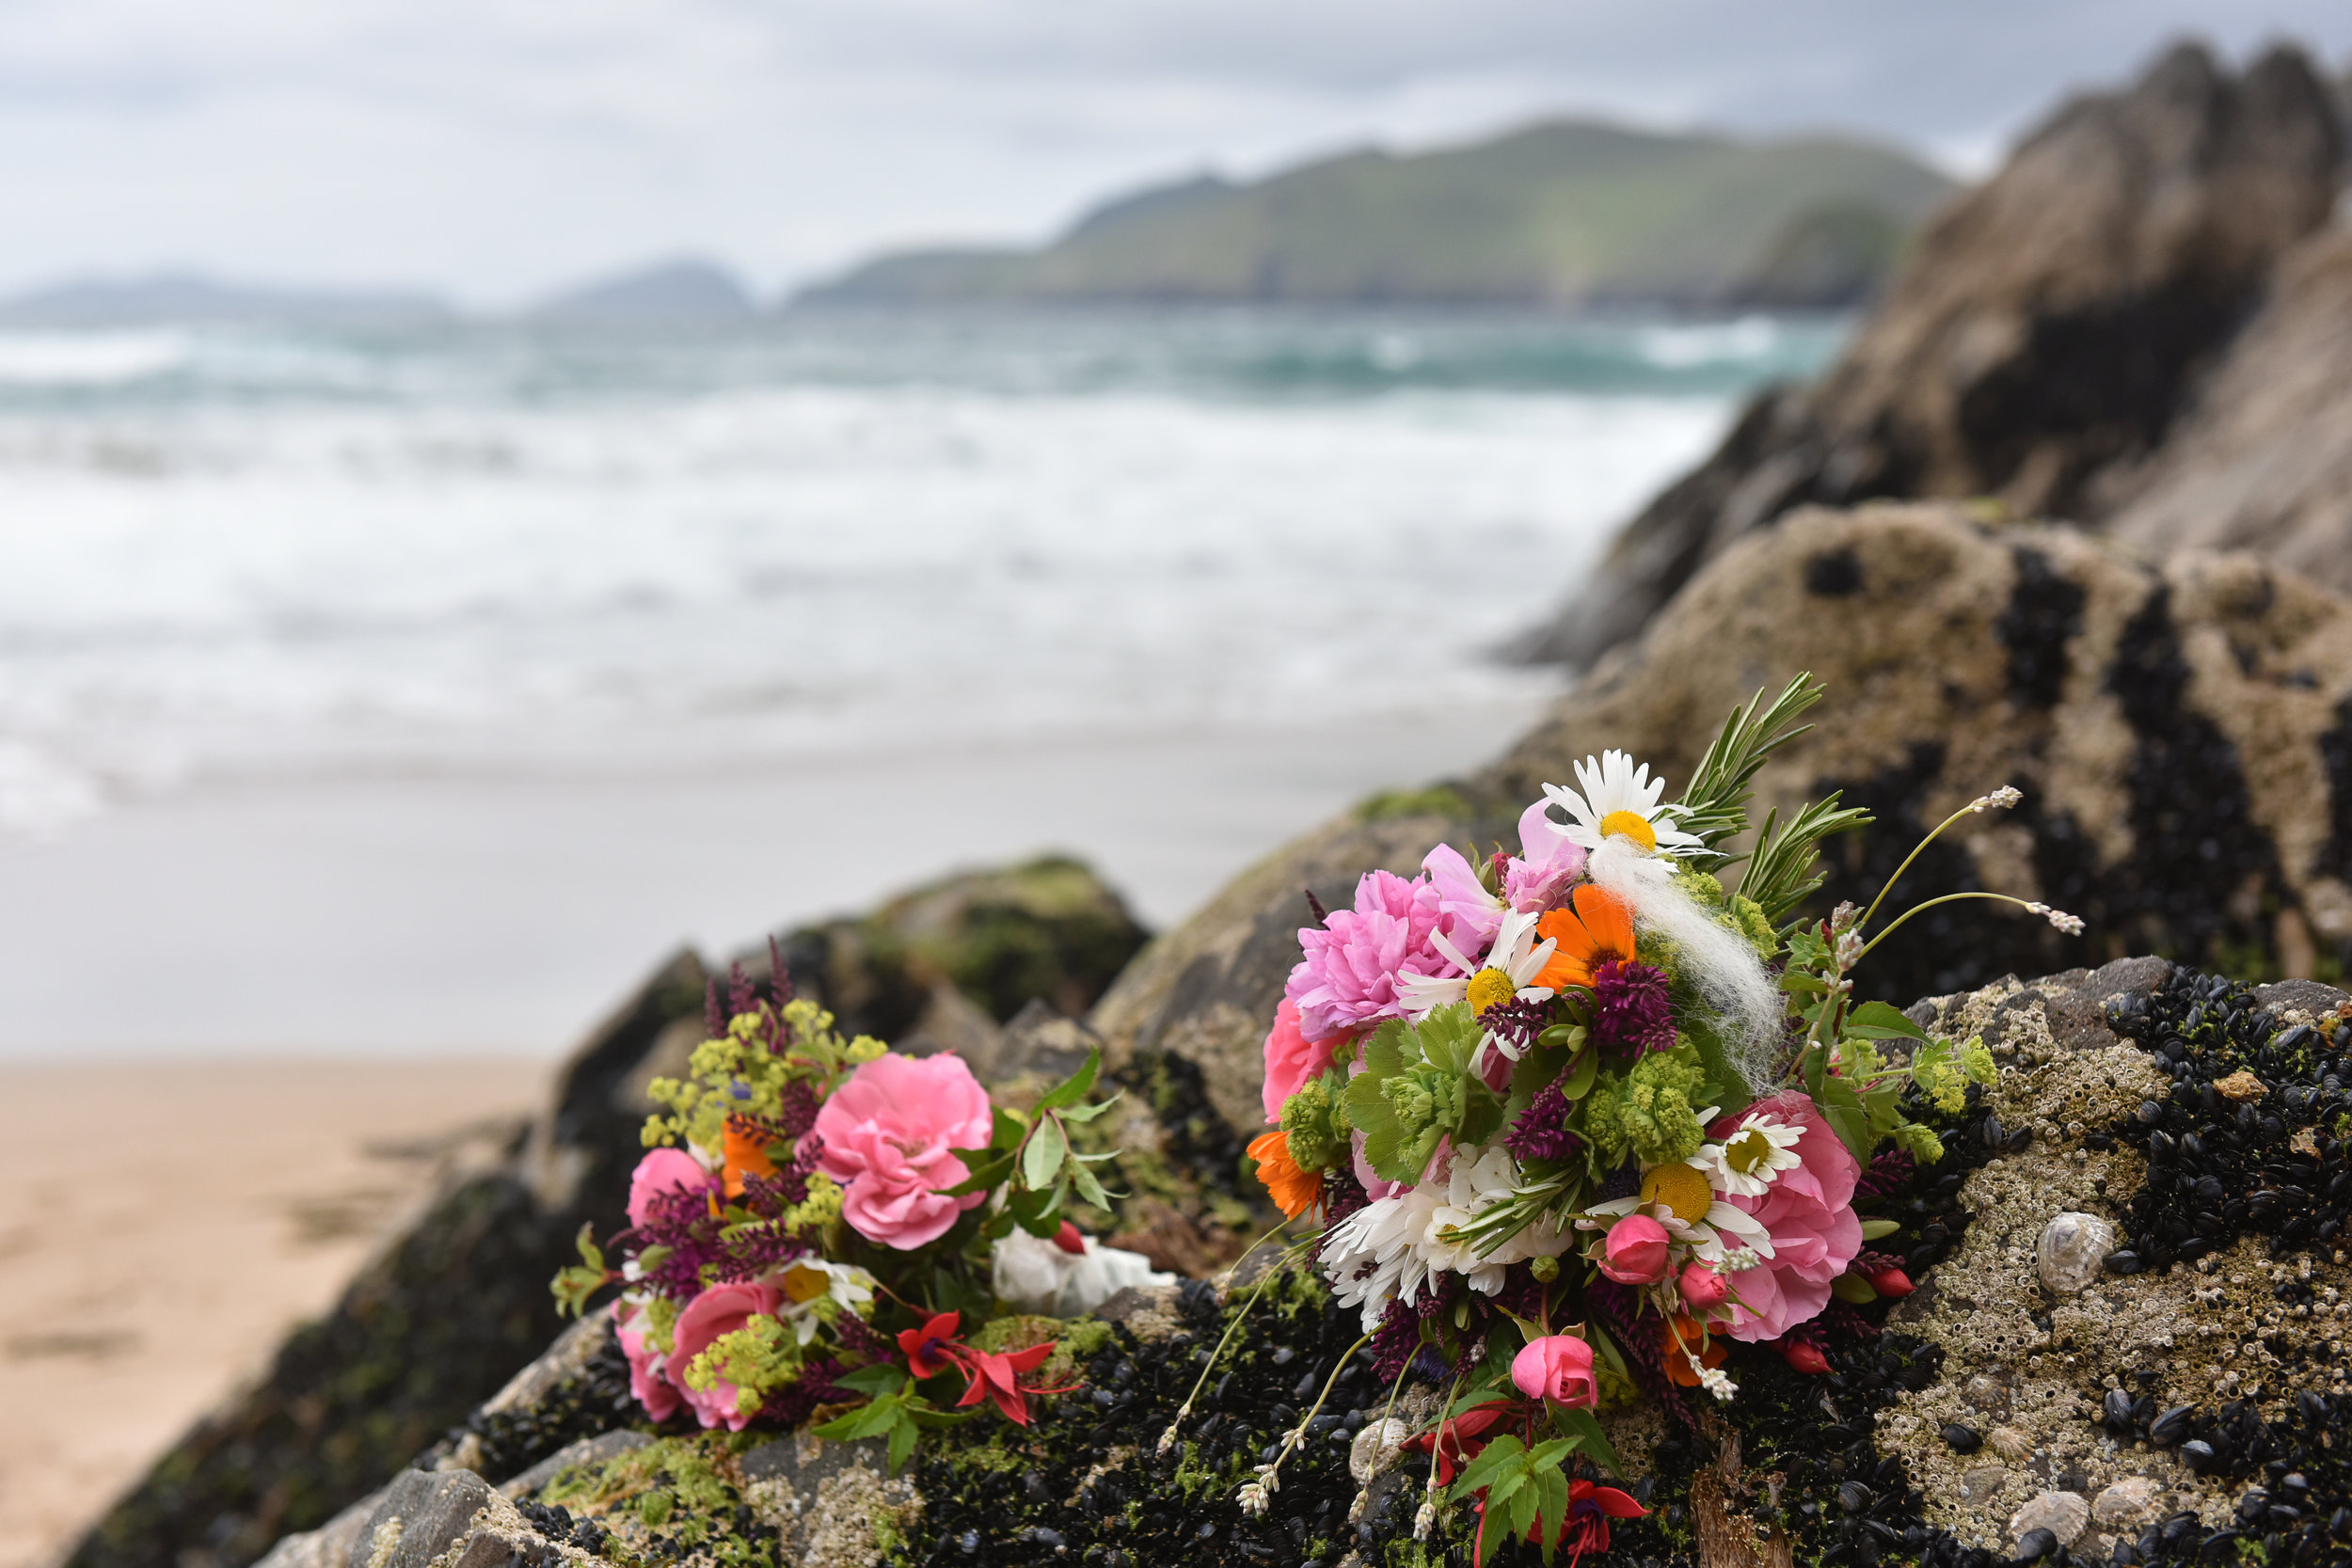 dingle druid coumenole beach wedding dingle.jpg